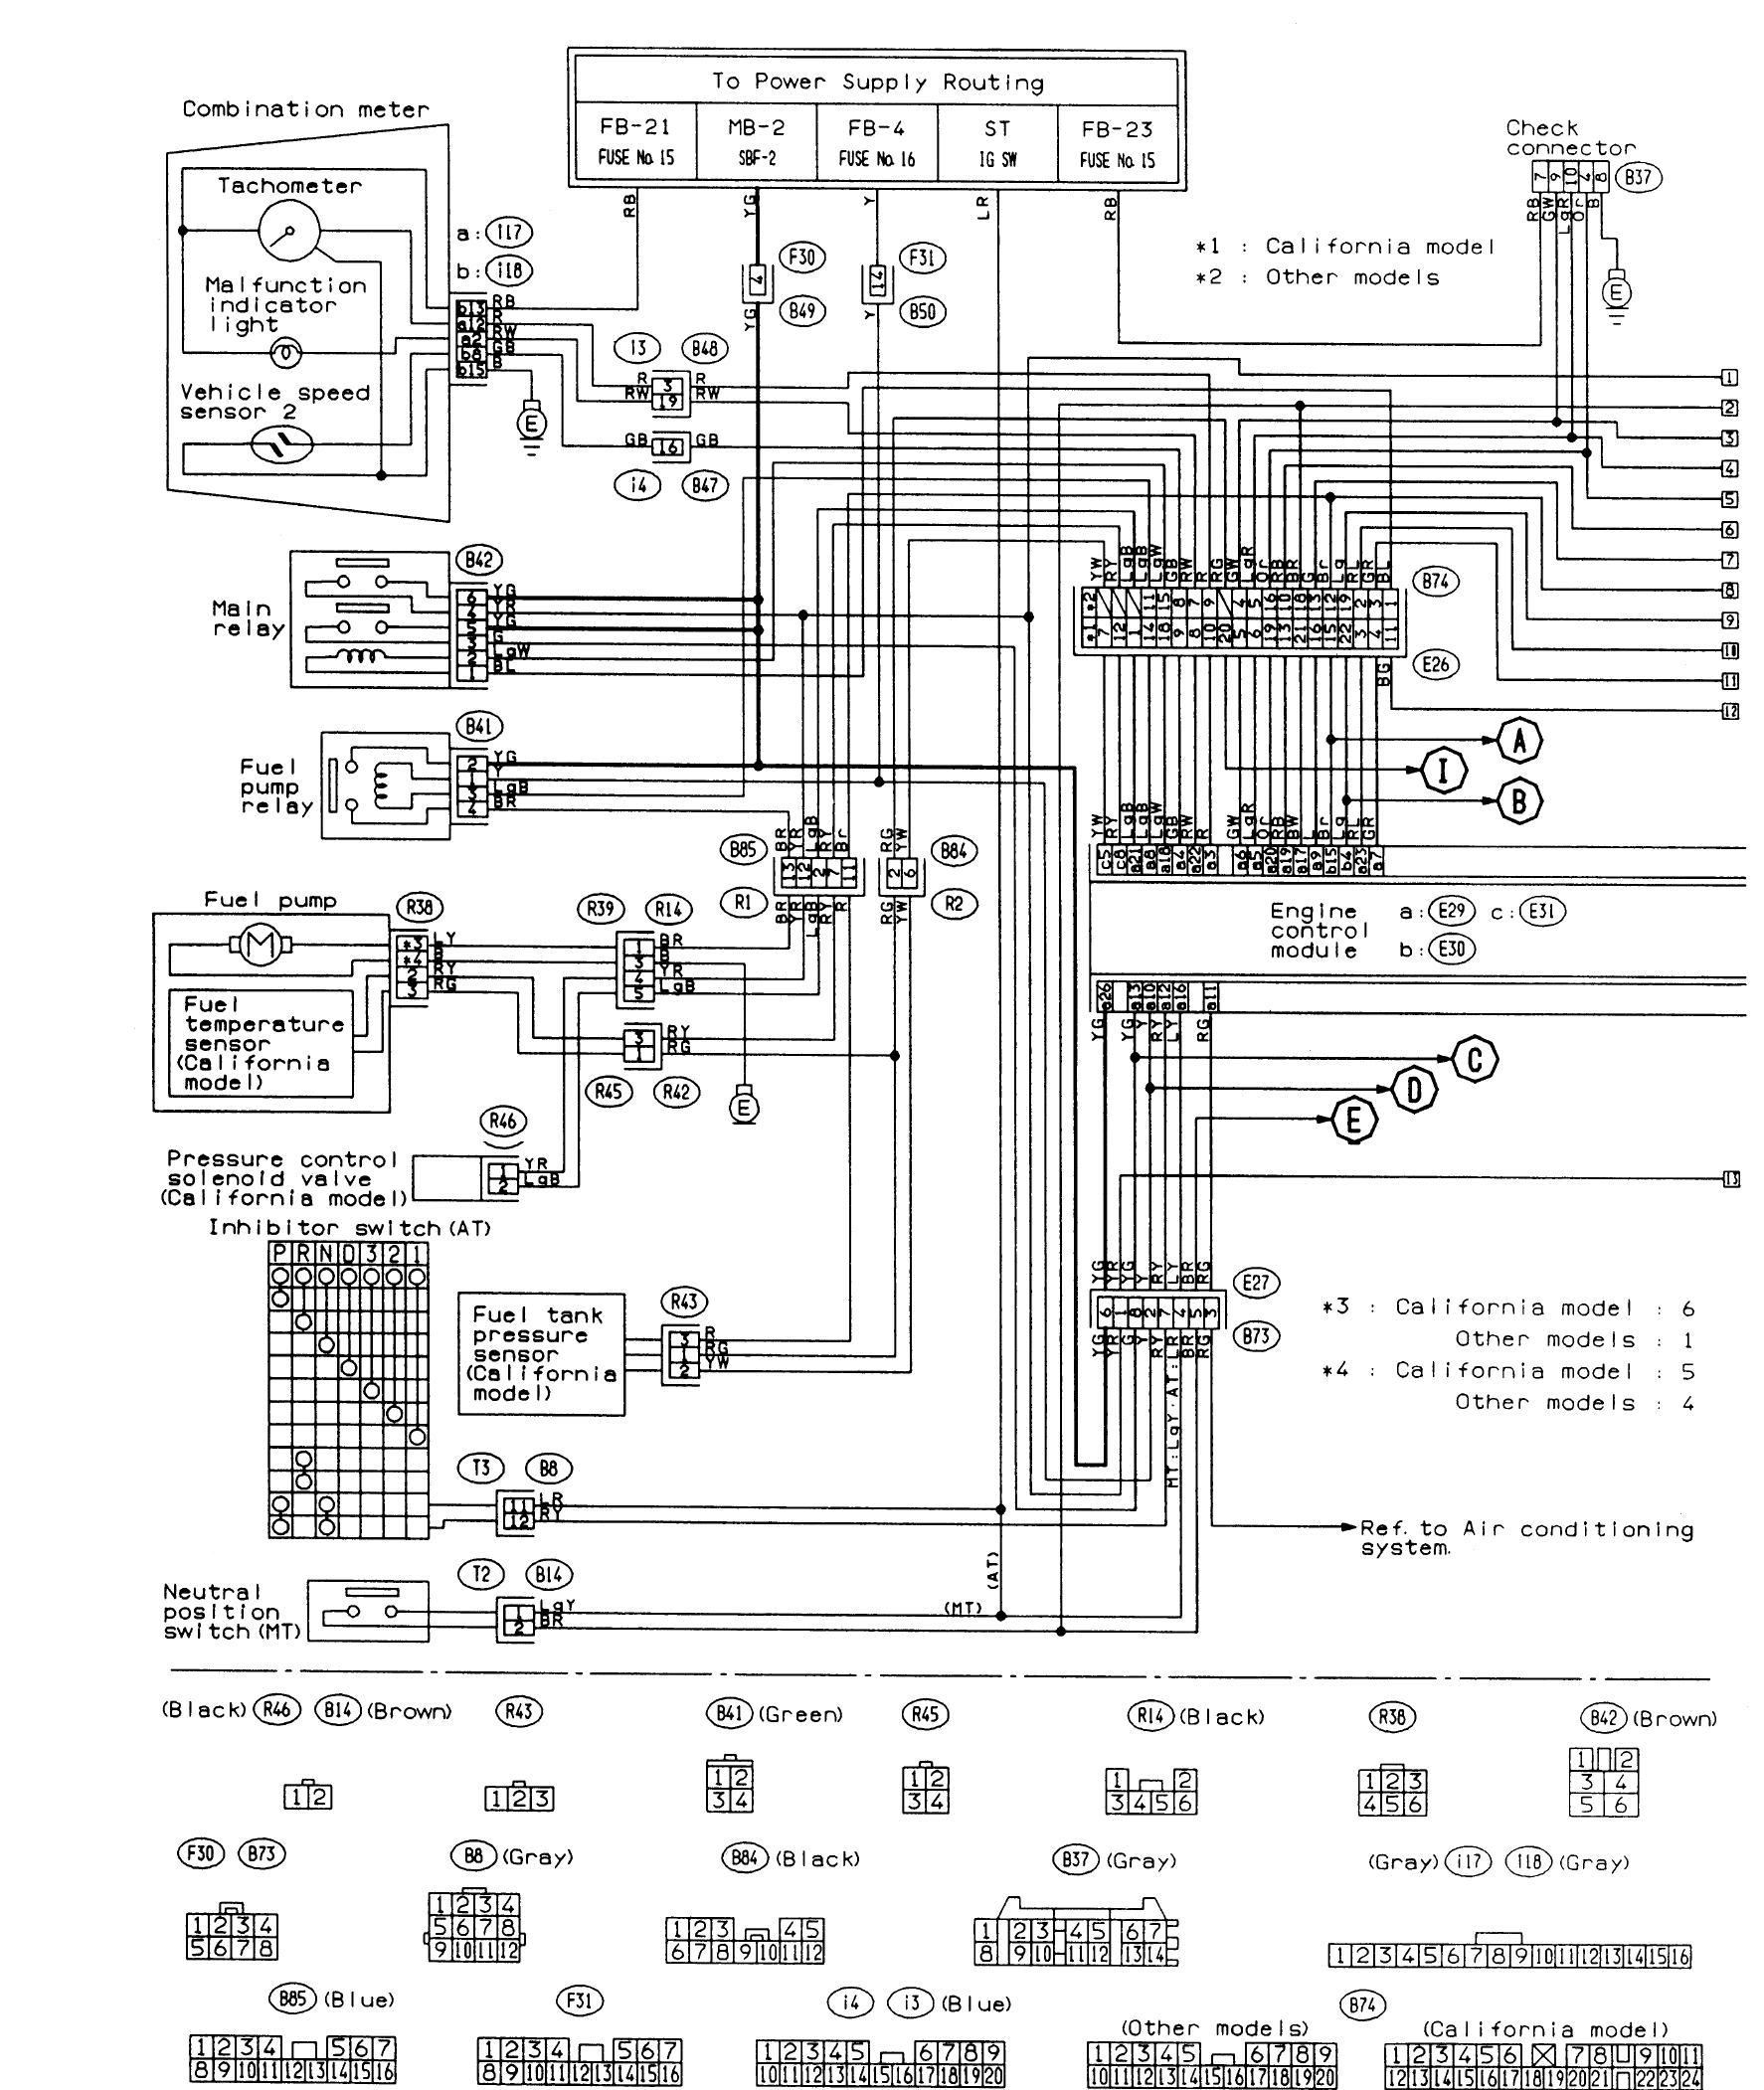 1996 subaru wiring schematic - wiring diagram tags oil-clan -  oil-clan.discoveriran.it  discoveriran.it